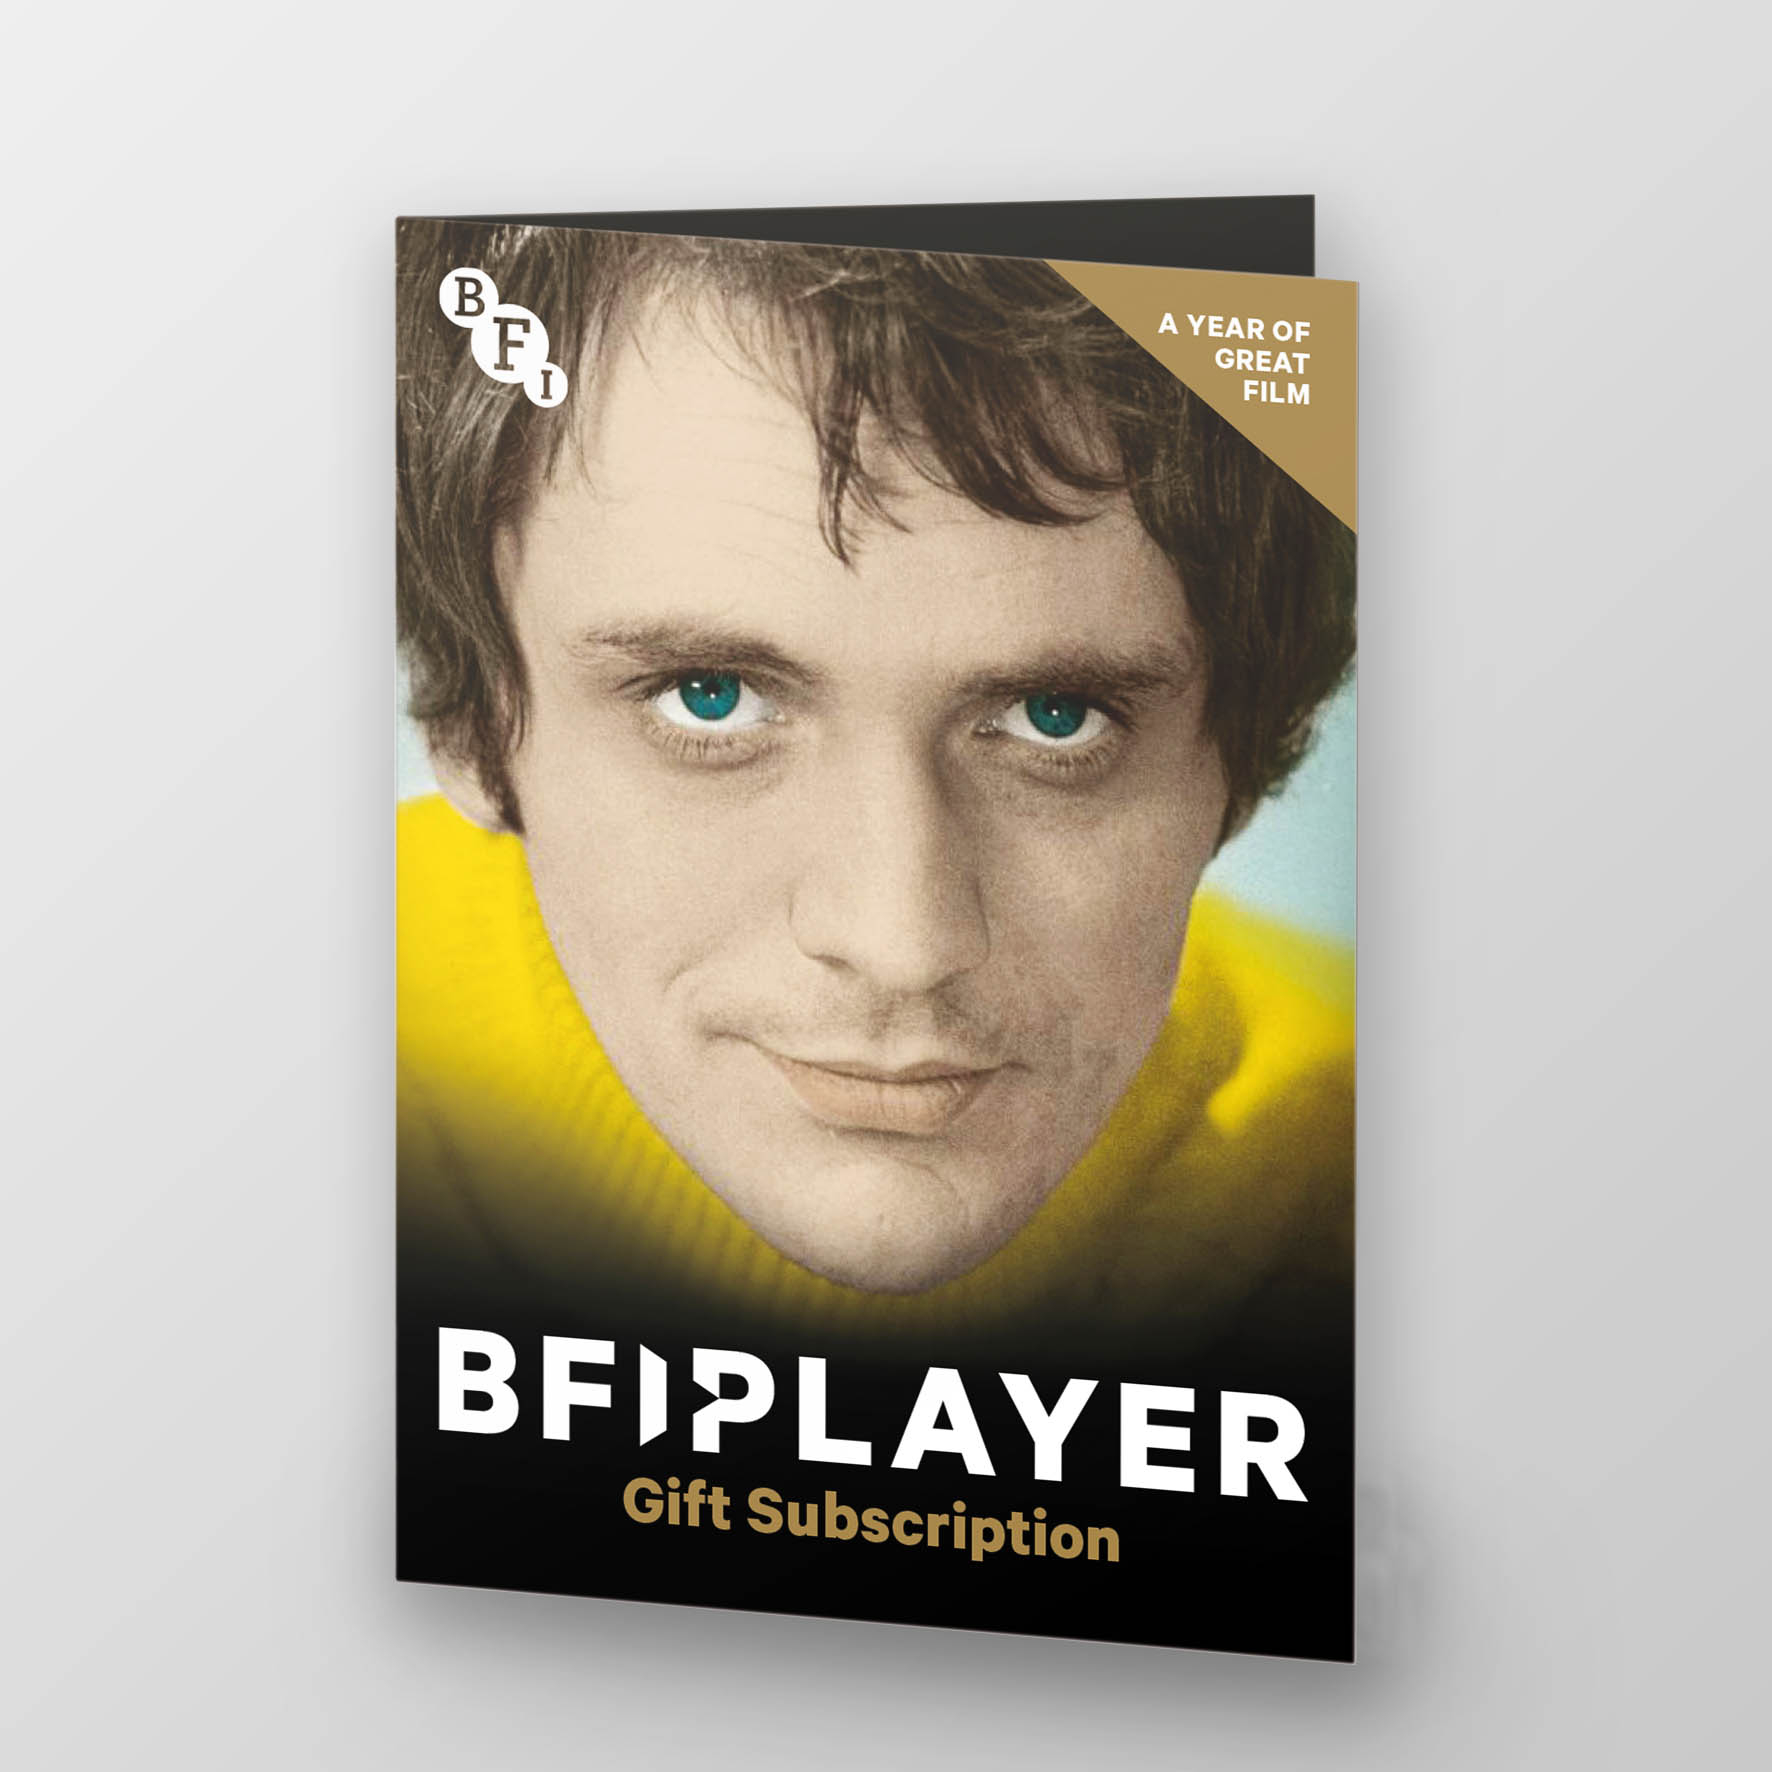 Buy BFI Player Gift Subscription (Theorem design)